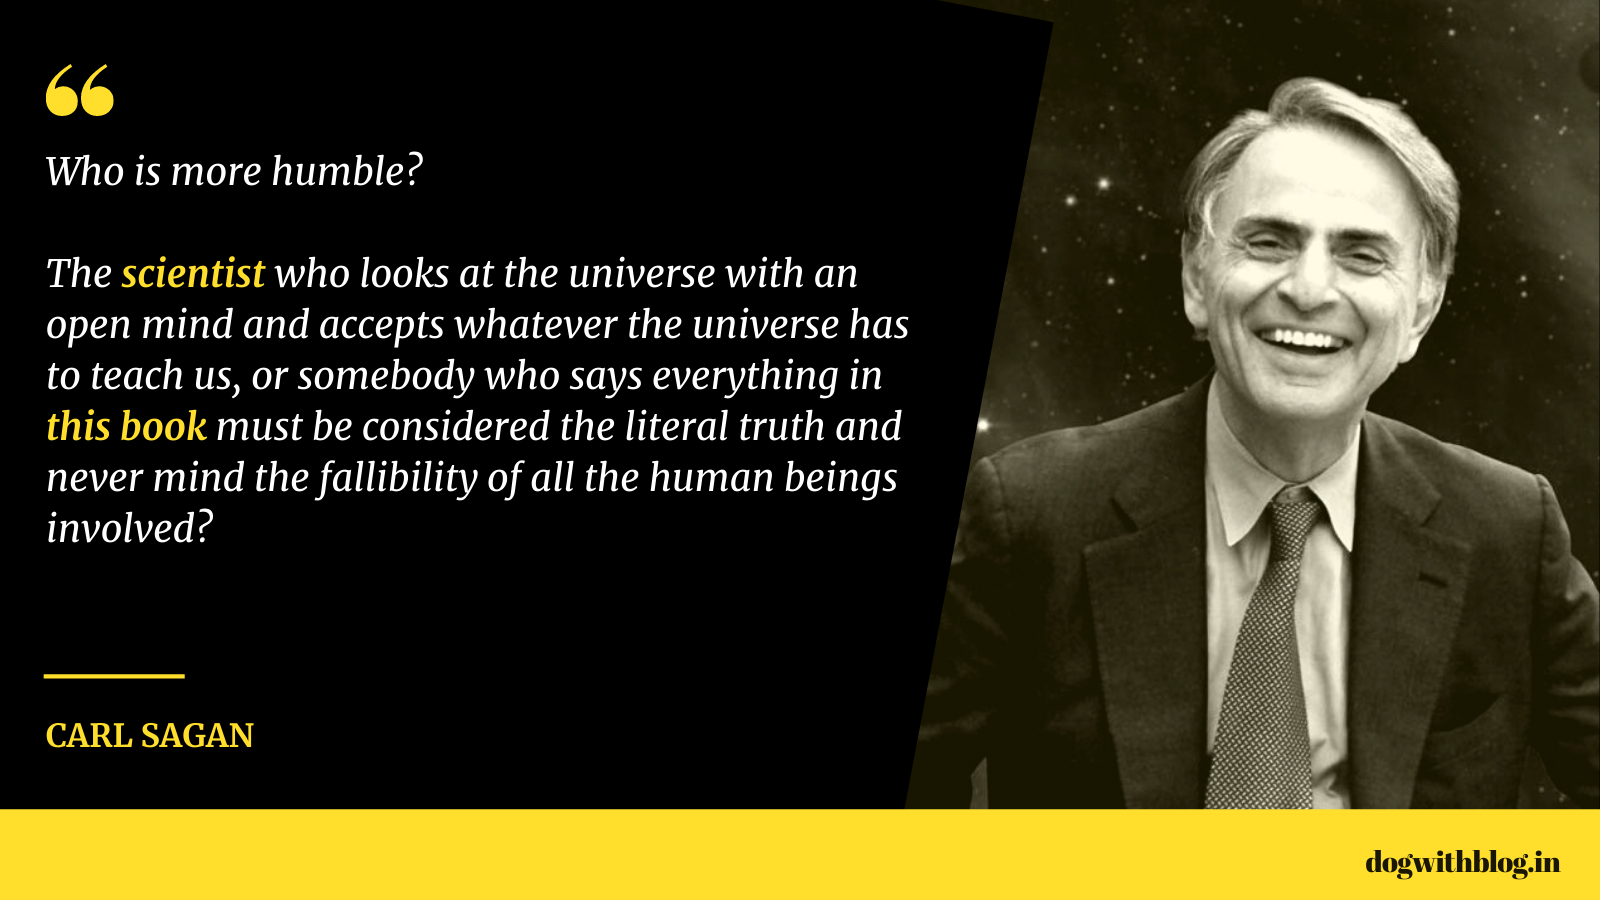 """Who is more humble? The scientist who looks at the universe with an open mind & accepts whatever the universe has to teach us, or somebody who says everything in this book must be considered the literal truth and never mind the fallibility of all the human beings involved?"" – Carl Sagan [1600*900]"